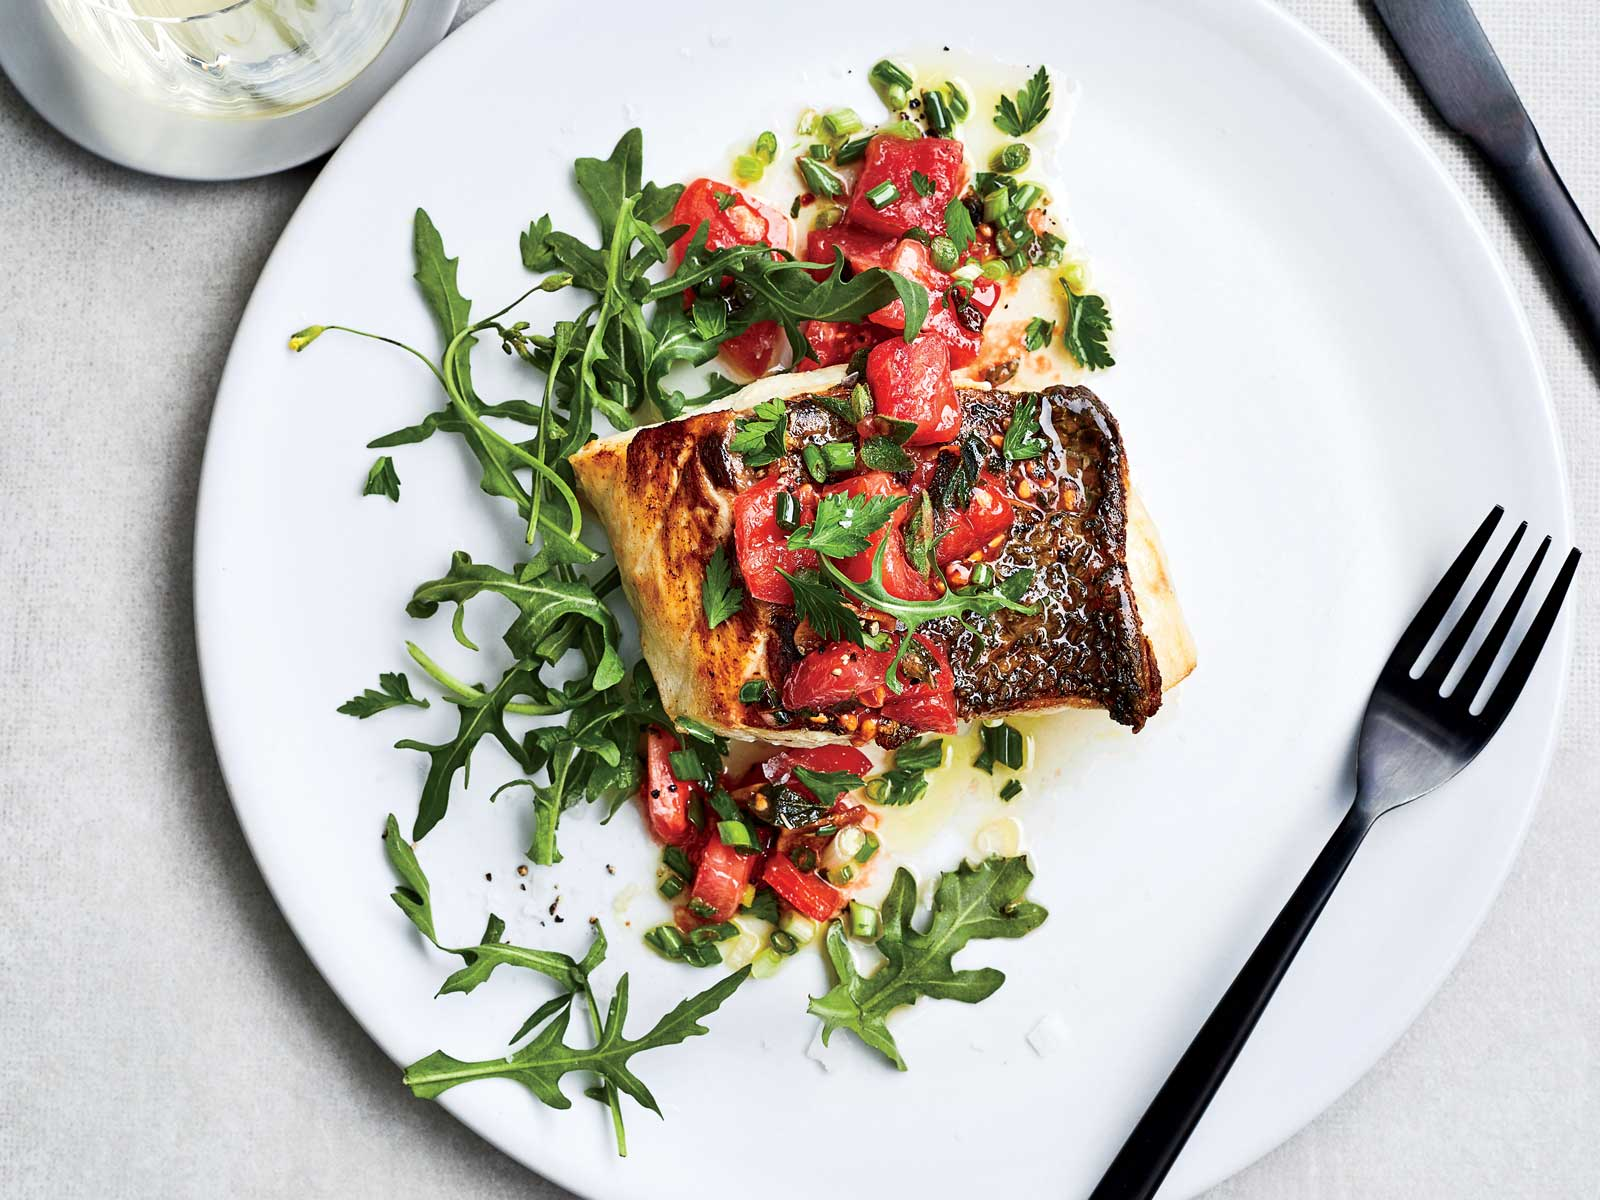 Pan Seared Bass with Garlic Scape Salmoriglio